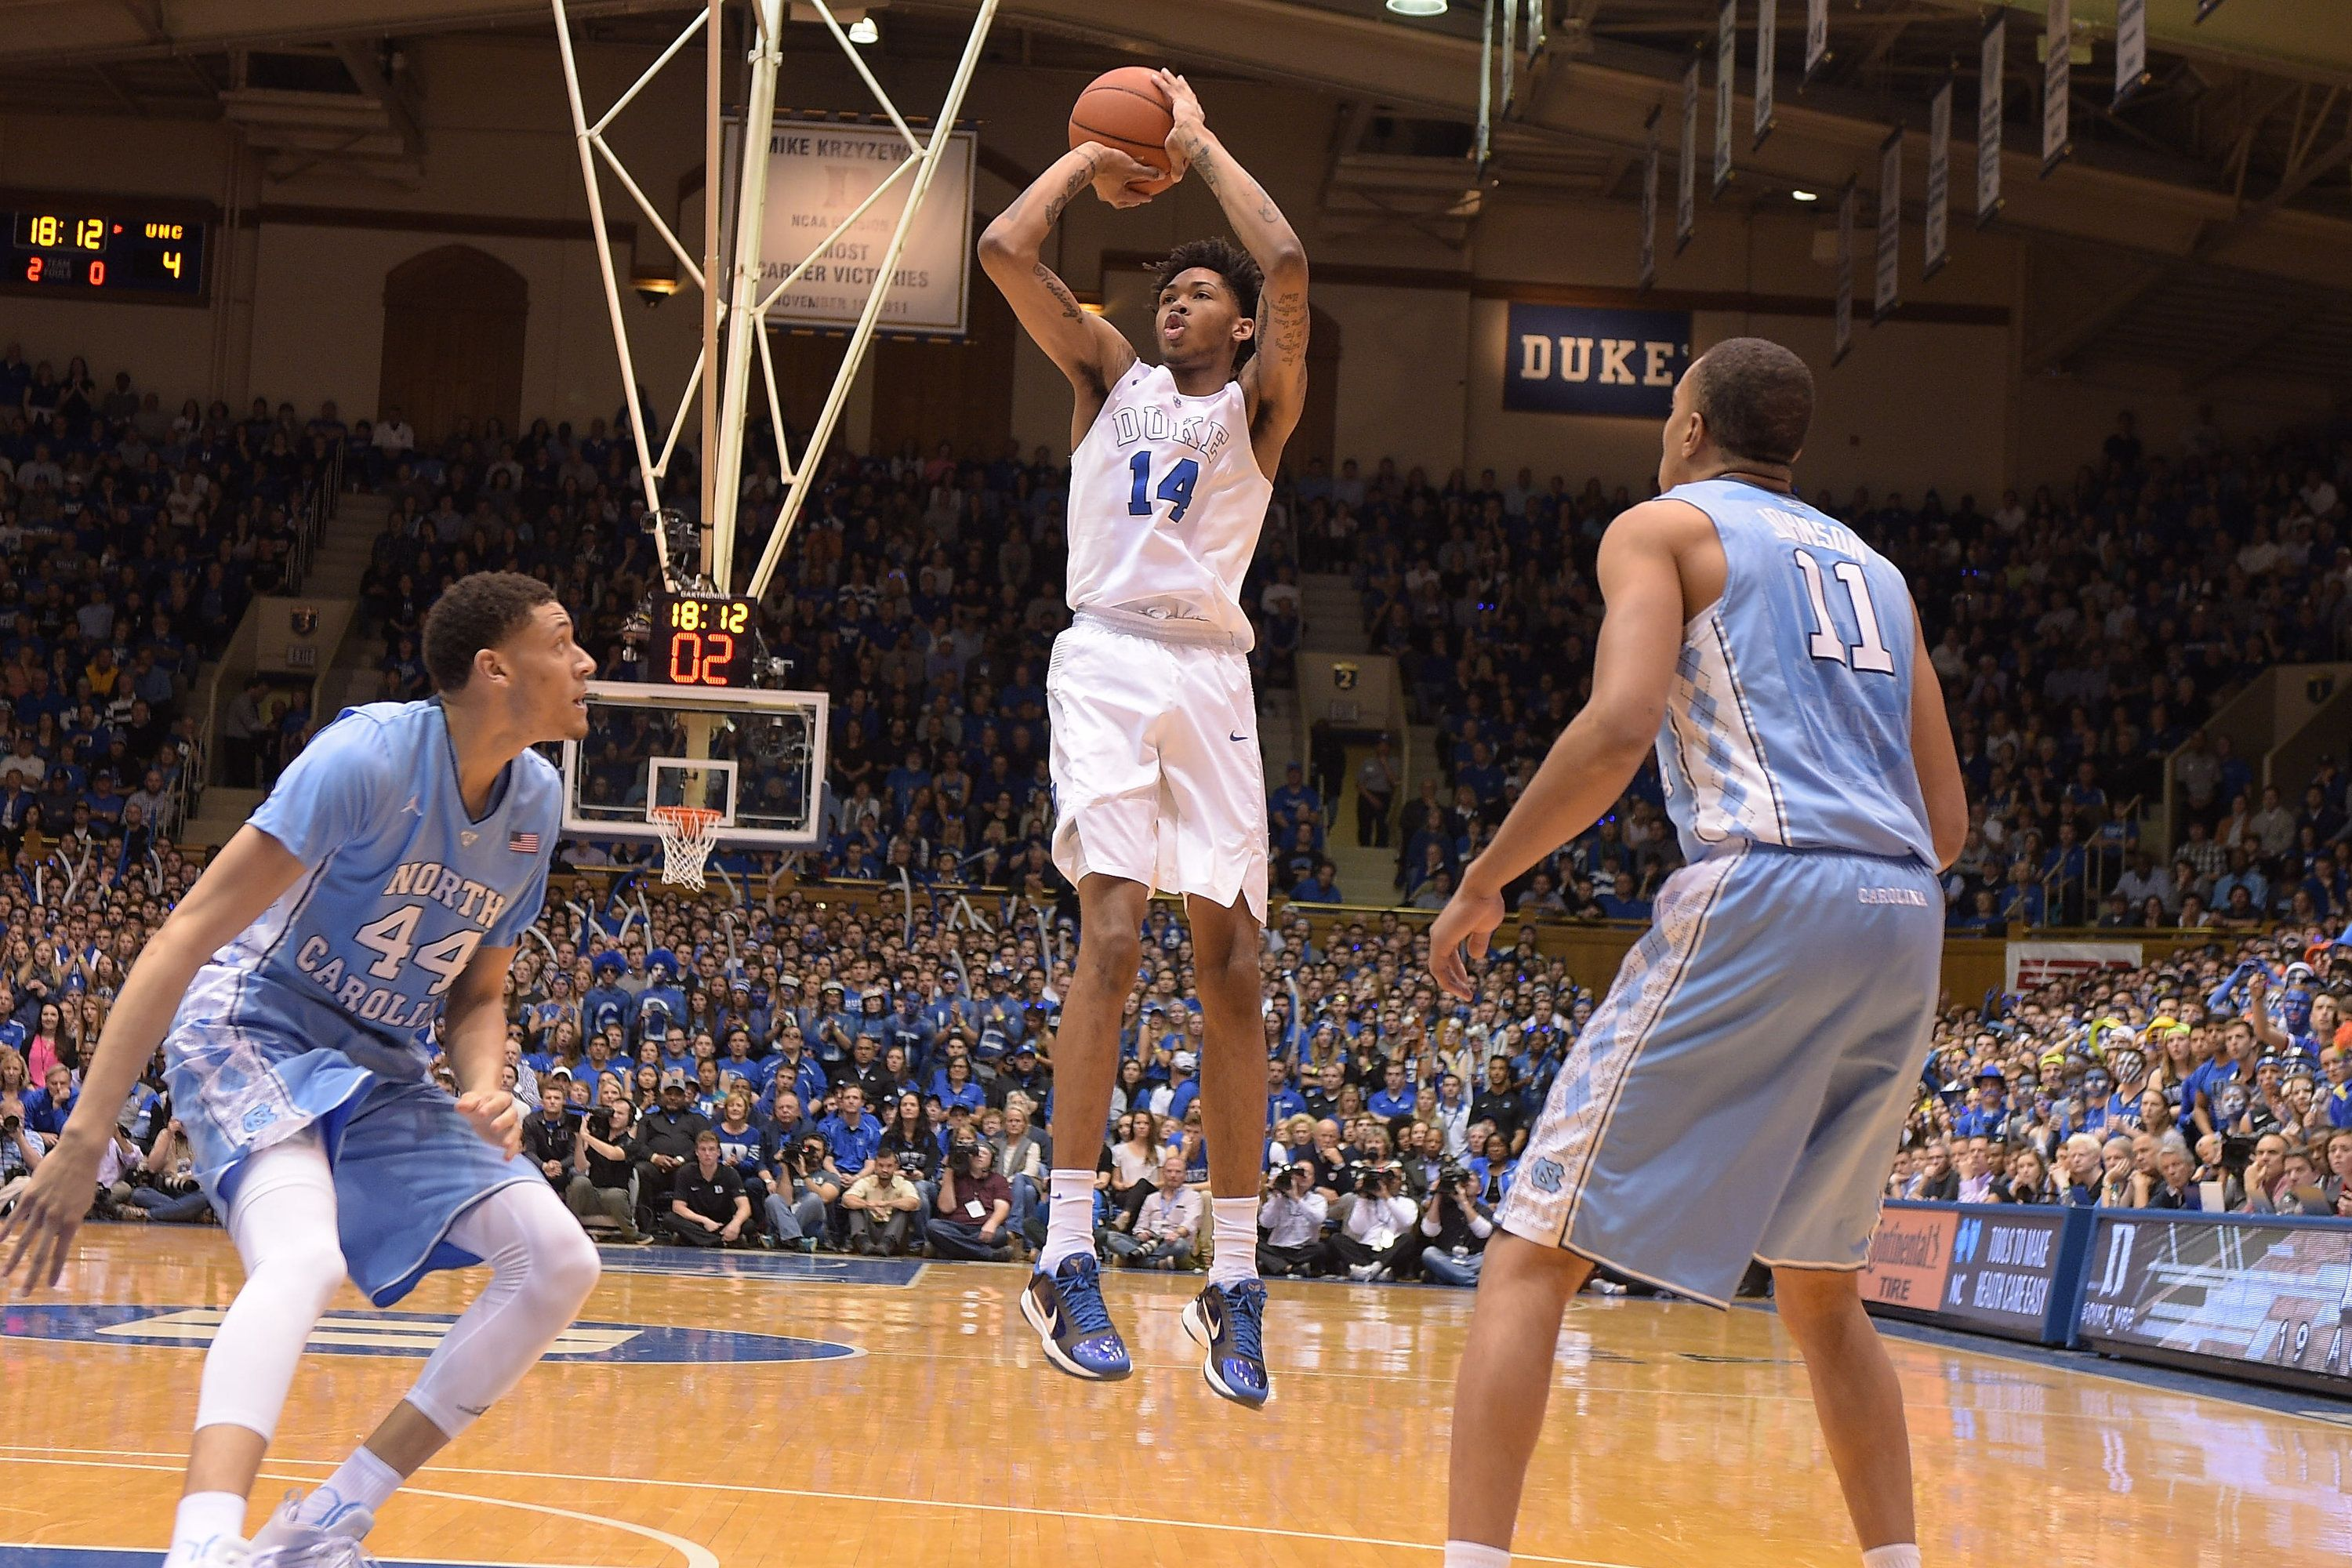 DURHAM, NC - MARCH 05: Brandon Ingram #14 of the Duke Blue Devils puts up a shot against the North Carolina Tar Heels at Cameron Indoor Stadium on March 5, 2016 in Durham, North Carolina. (Photo by Lance King/Getty Images)